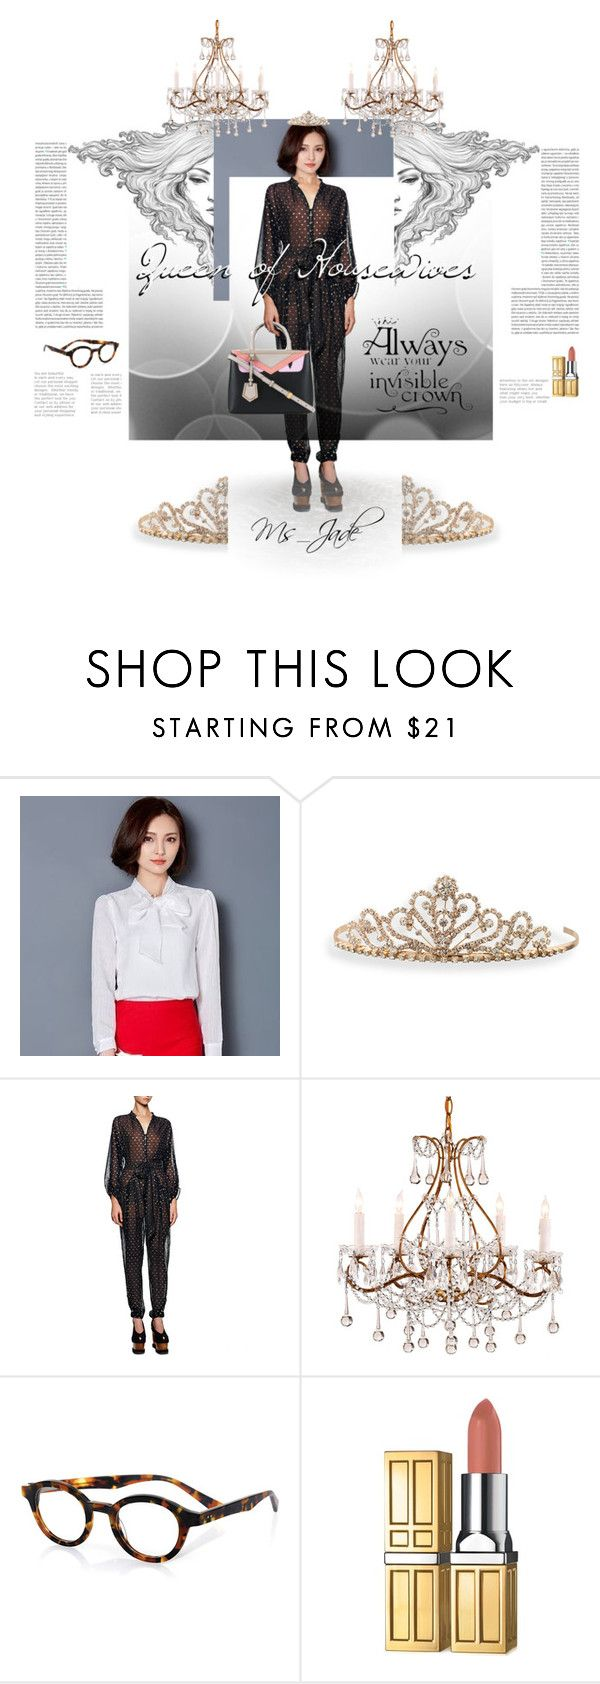 """Queen of Housewives Fan Art Fashion Set"" by ms-jade-1 ❤ liked on Polyvore featuring Oris, Lavogo, BillyTheTree, STELLA McCARTNEY, eyebobs, Elizabeth Arden, fashionset, fanart, kdrama and ms_jade"